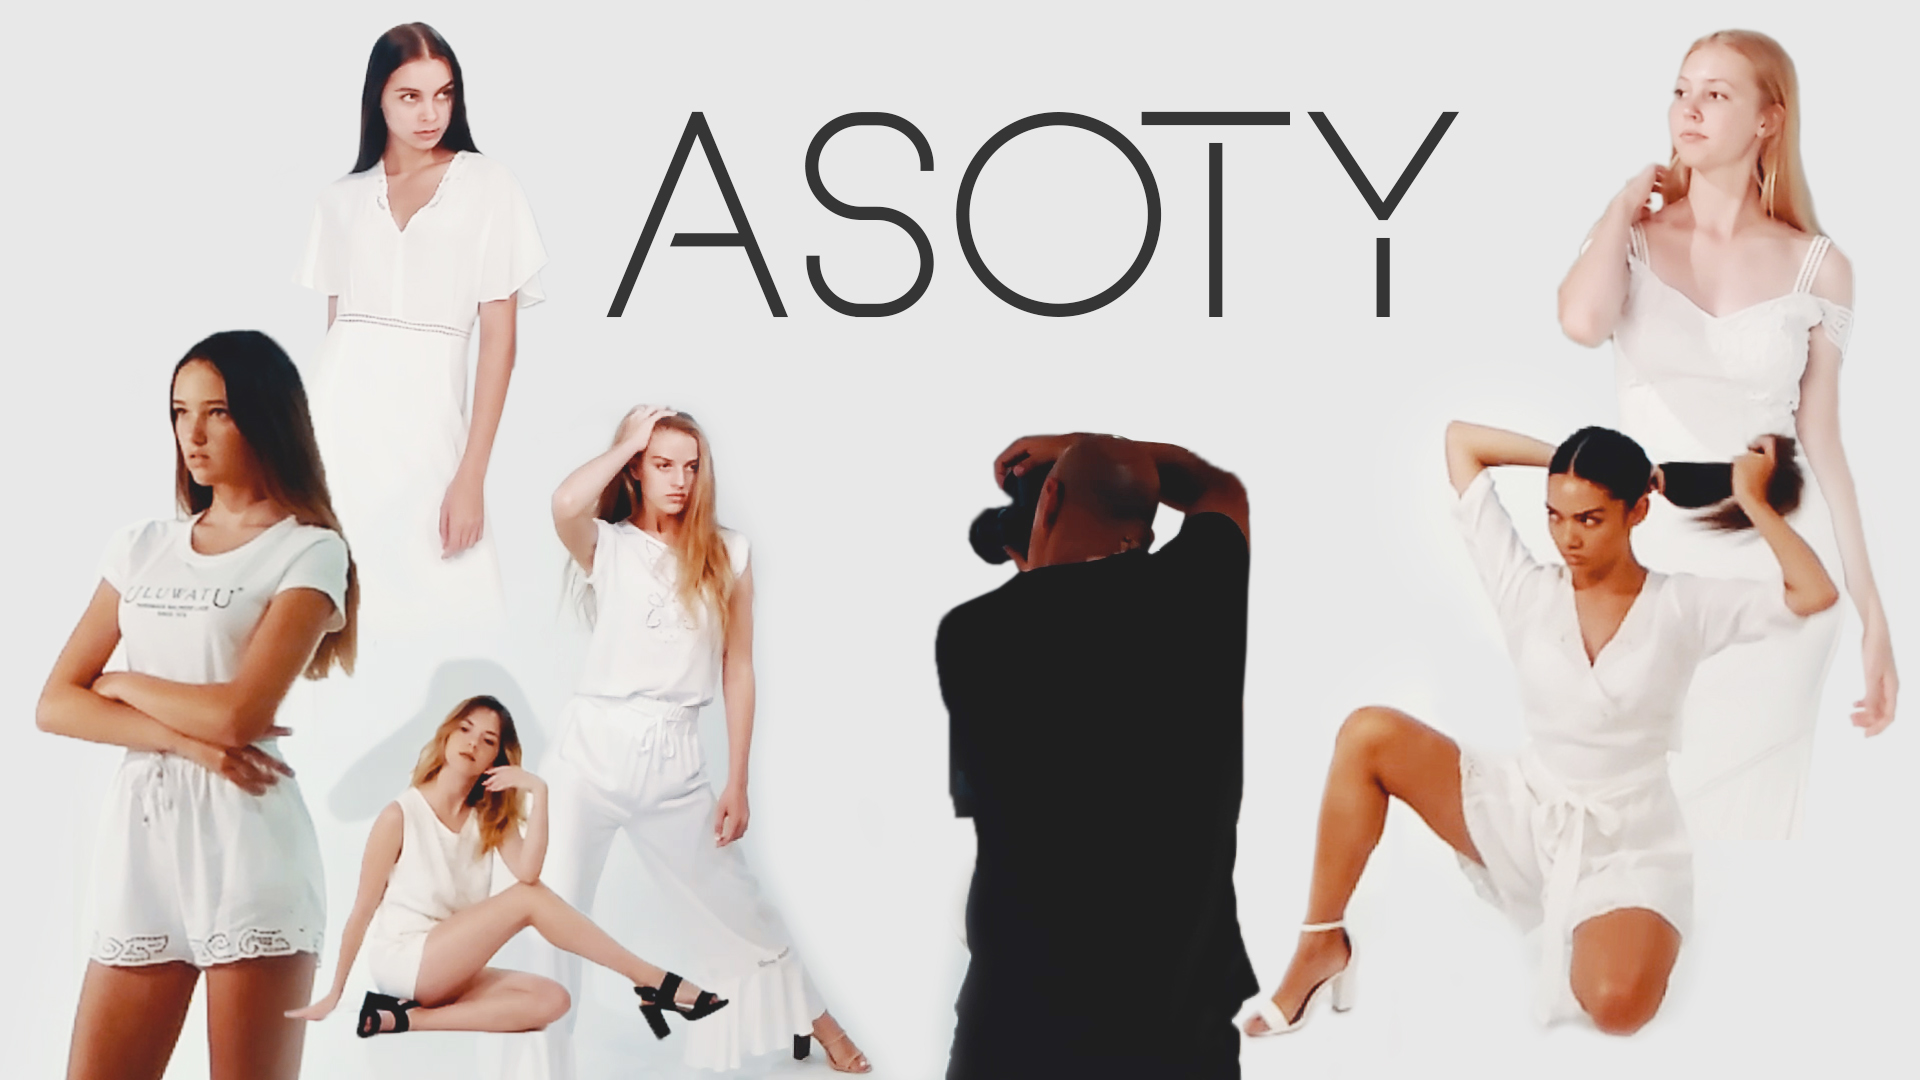 Behind The Scene ASOTY Photo Session 2020 | Australian Super Model Of The Year